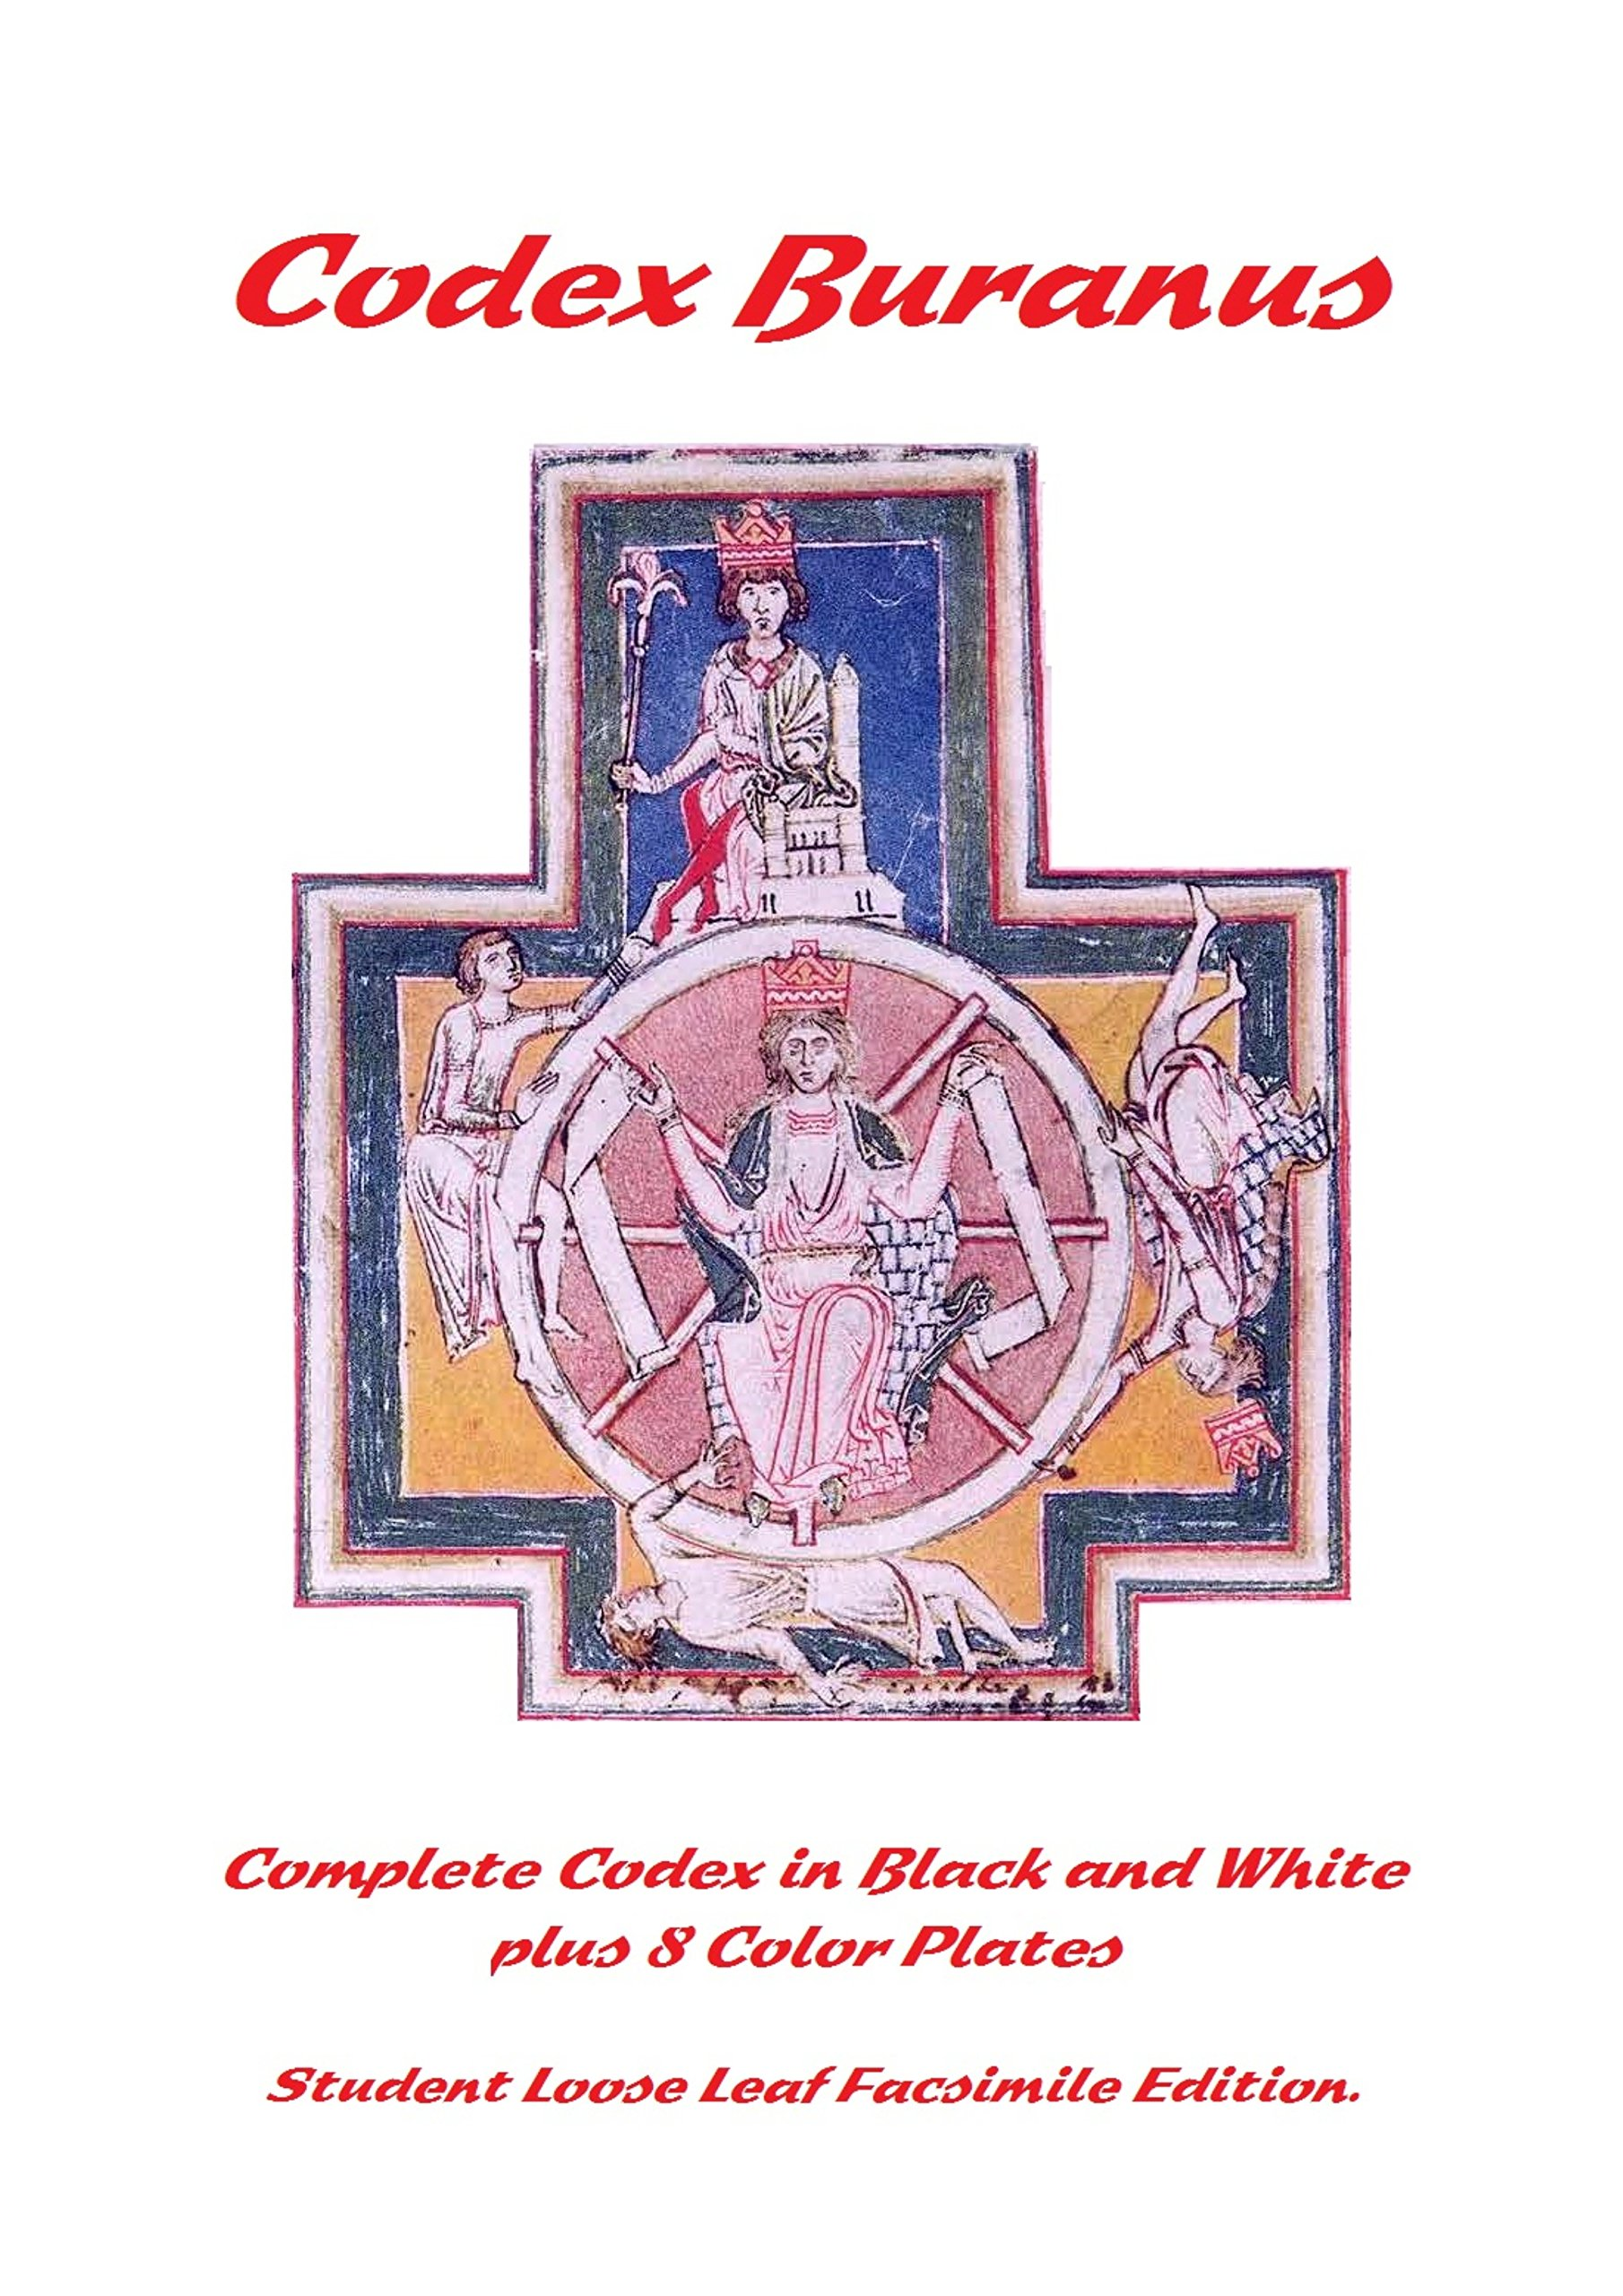 Read Online Codex buranus (Carmina Burana or the 'Songs from Beuern' by Anonymous) Complete Facsimile in Black and White with 8 Color Graphic Plate. [Re-Imaged from Original for Greater Clarity] pdf epub